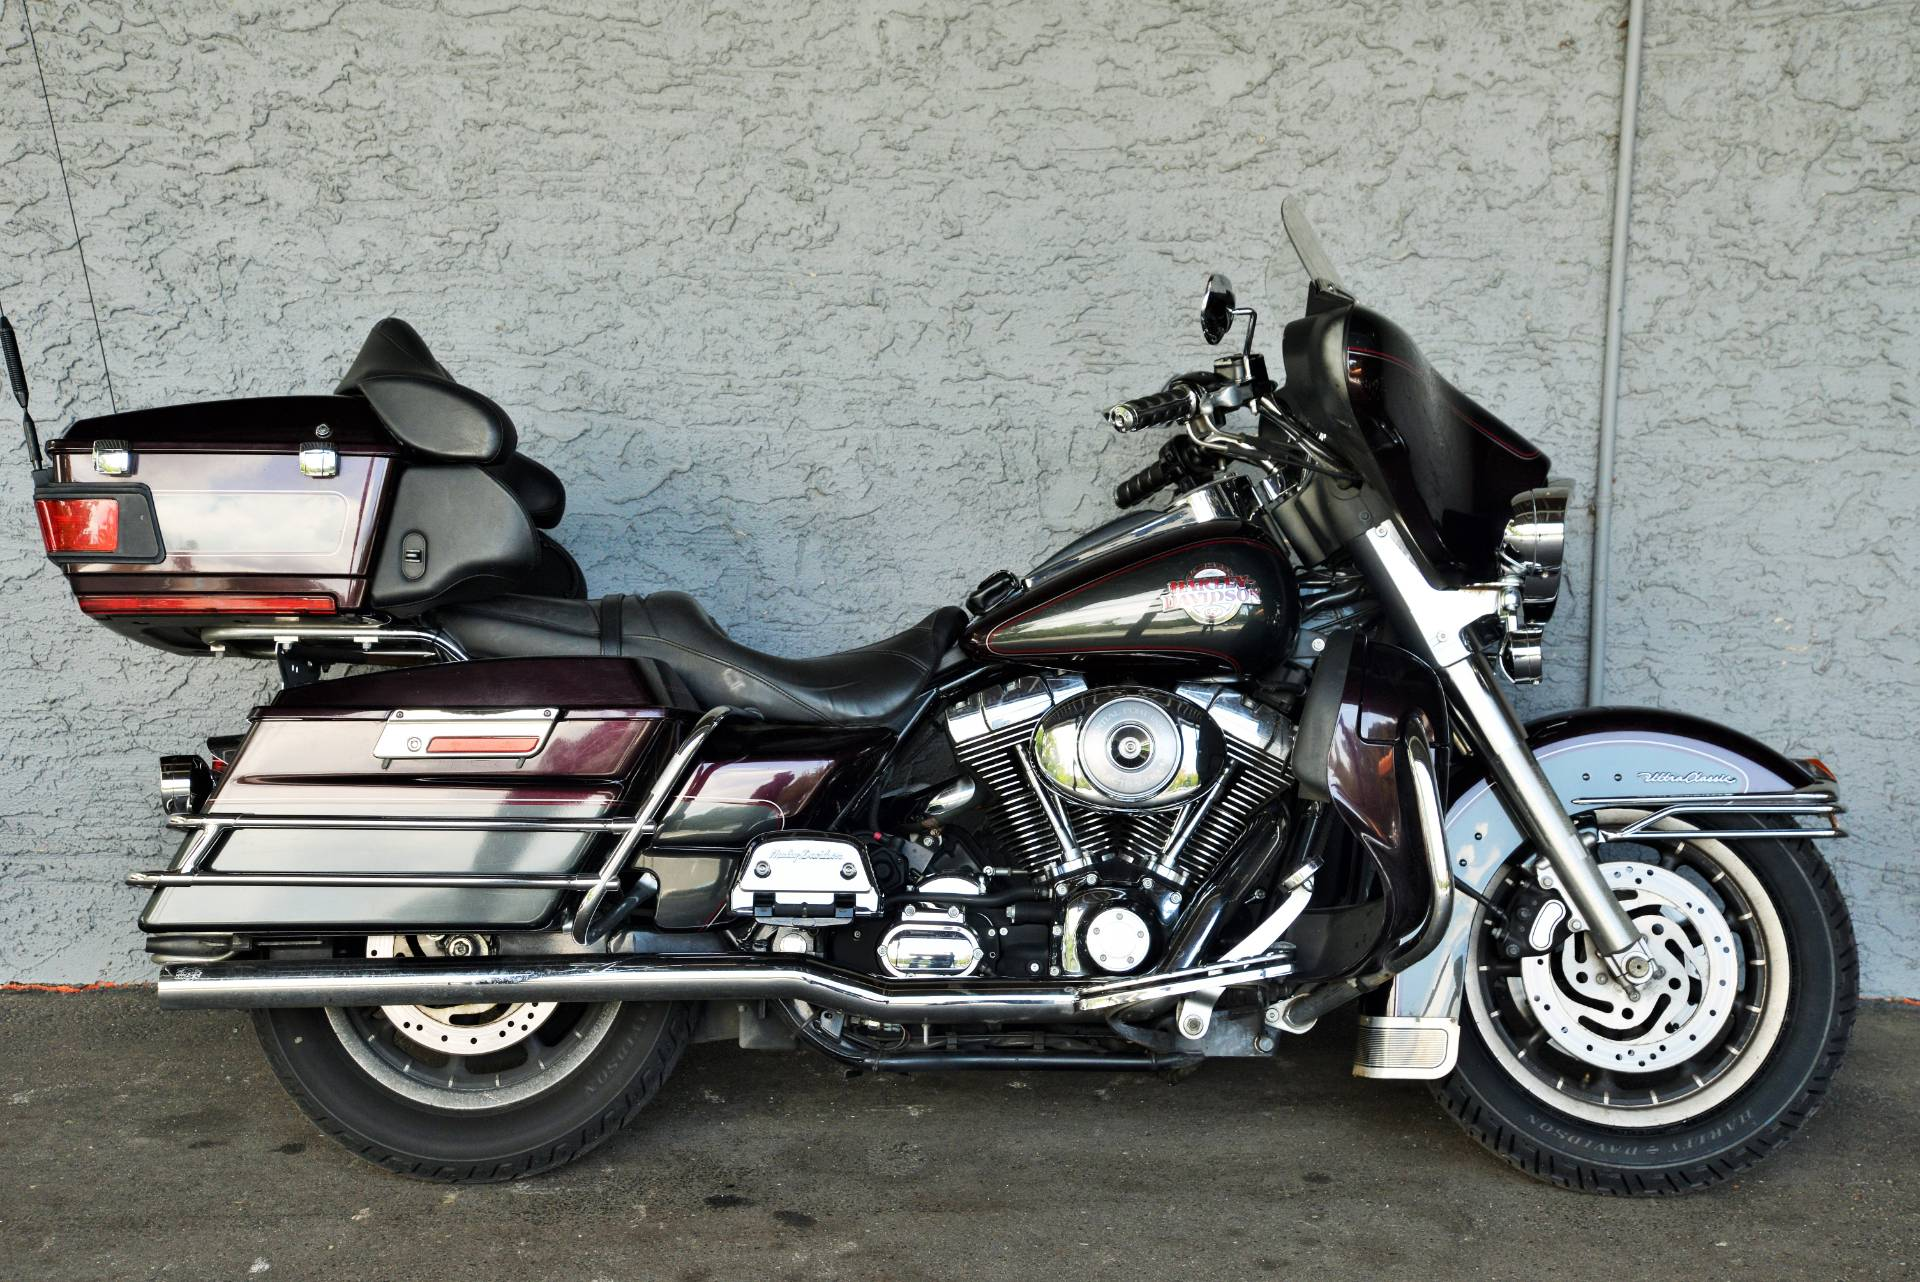 2006 Harley-Davidson ELECTRA GLIDE ULTRA in Lakewood, New Jersey - Photo 1